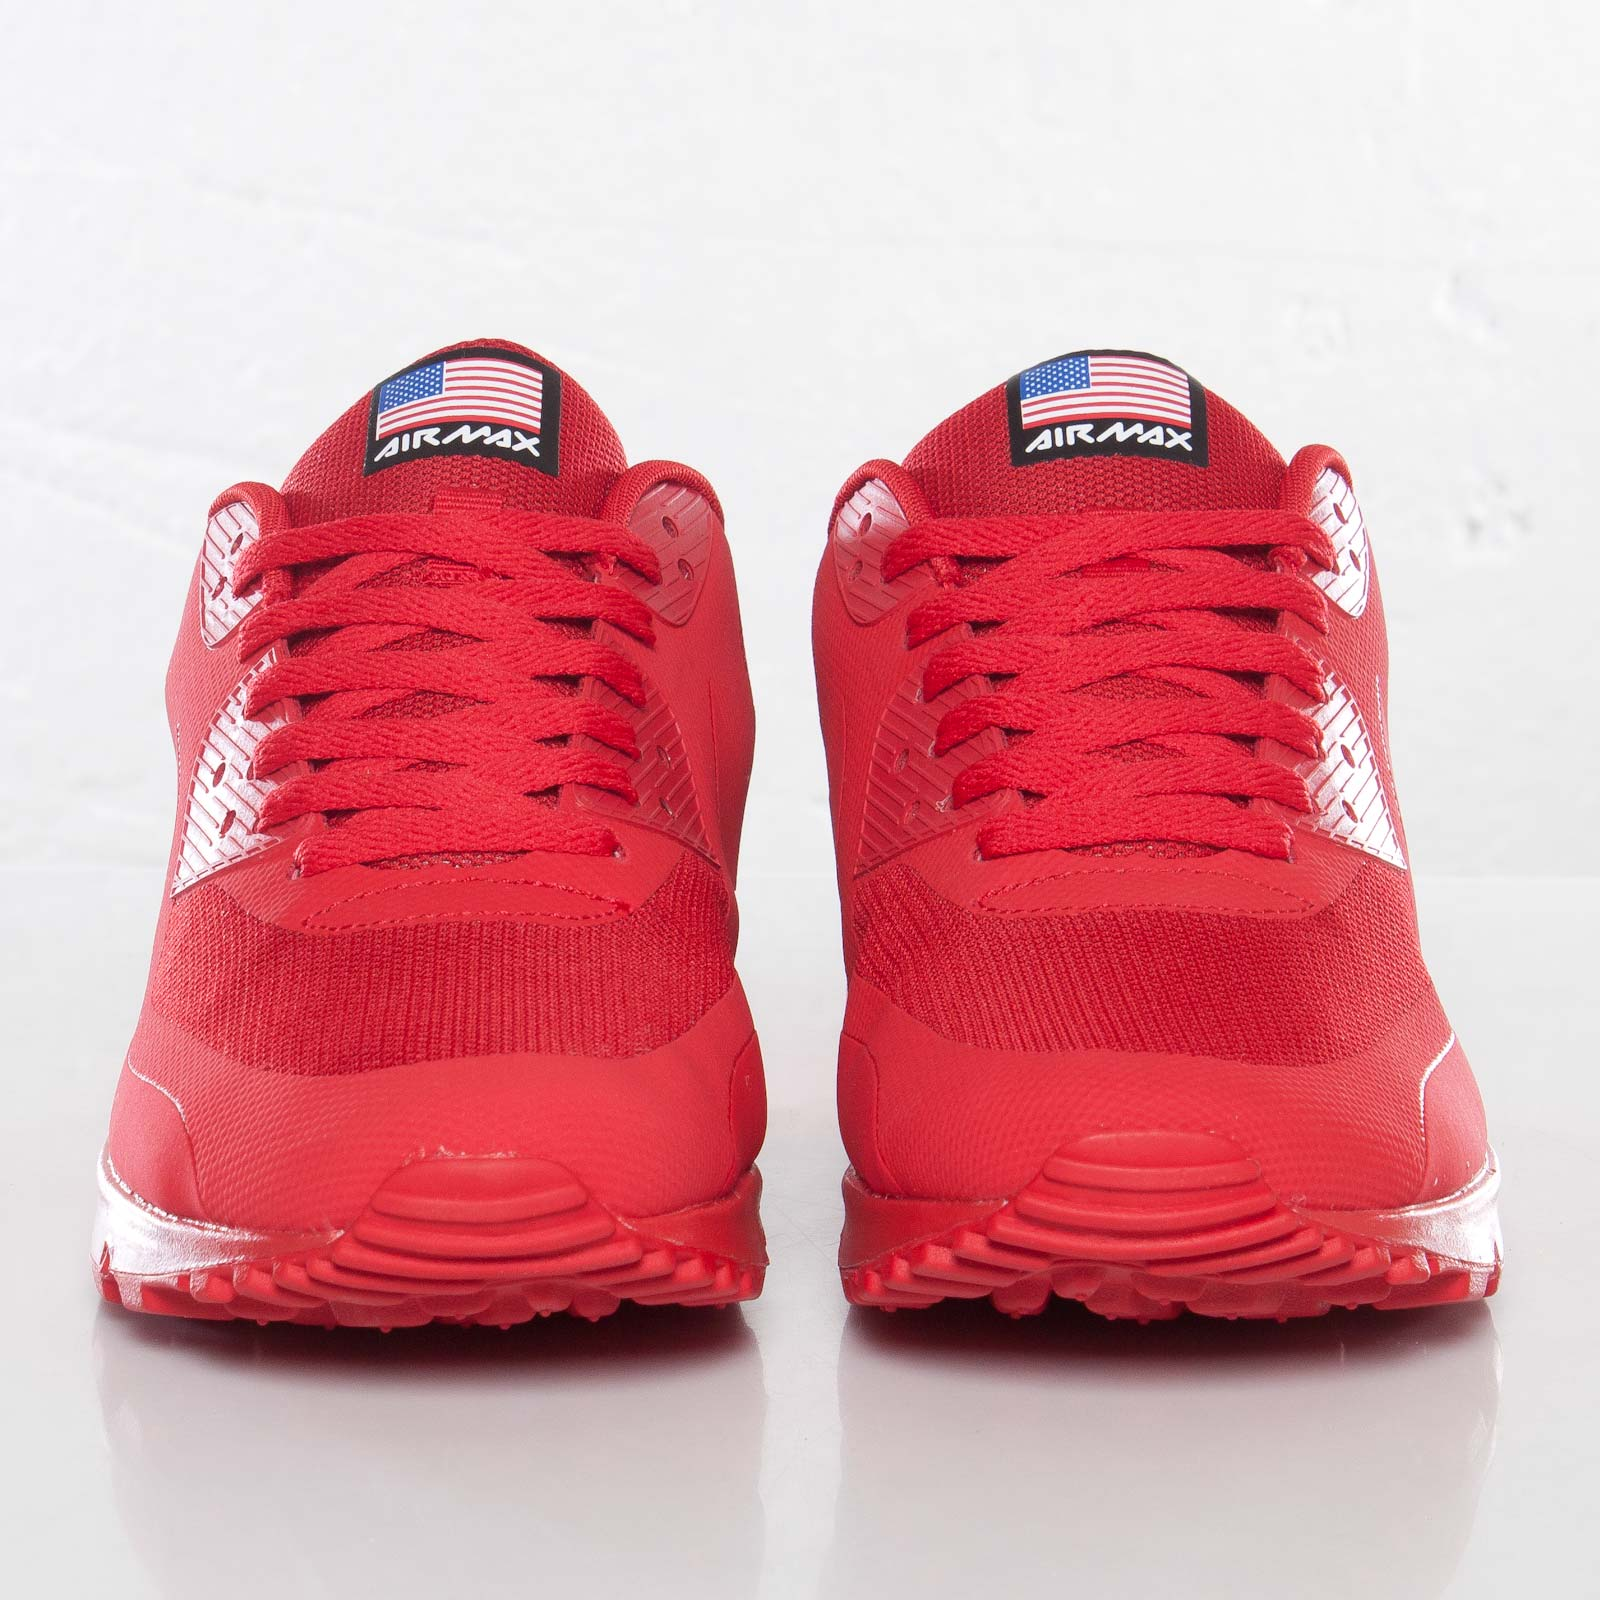 6ce644a7 Nike Air Max 90 Hyperfuse QS - 613841-660 - Sneakersnstuff | sneakers &  streetwear online since 1999